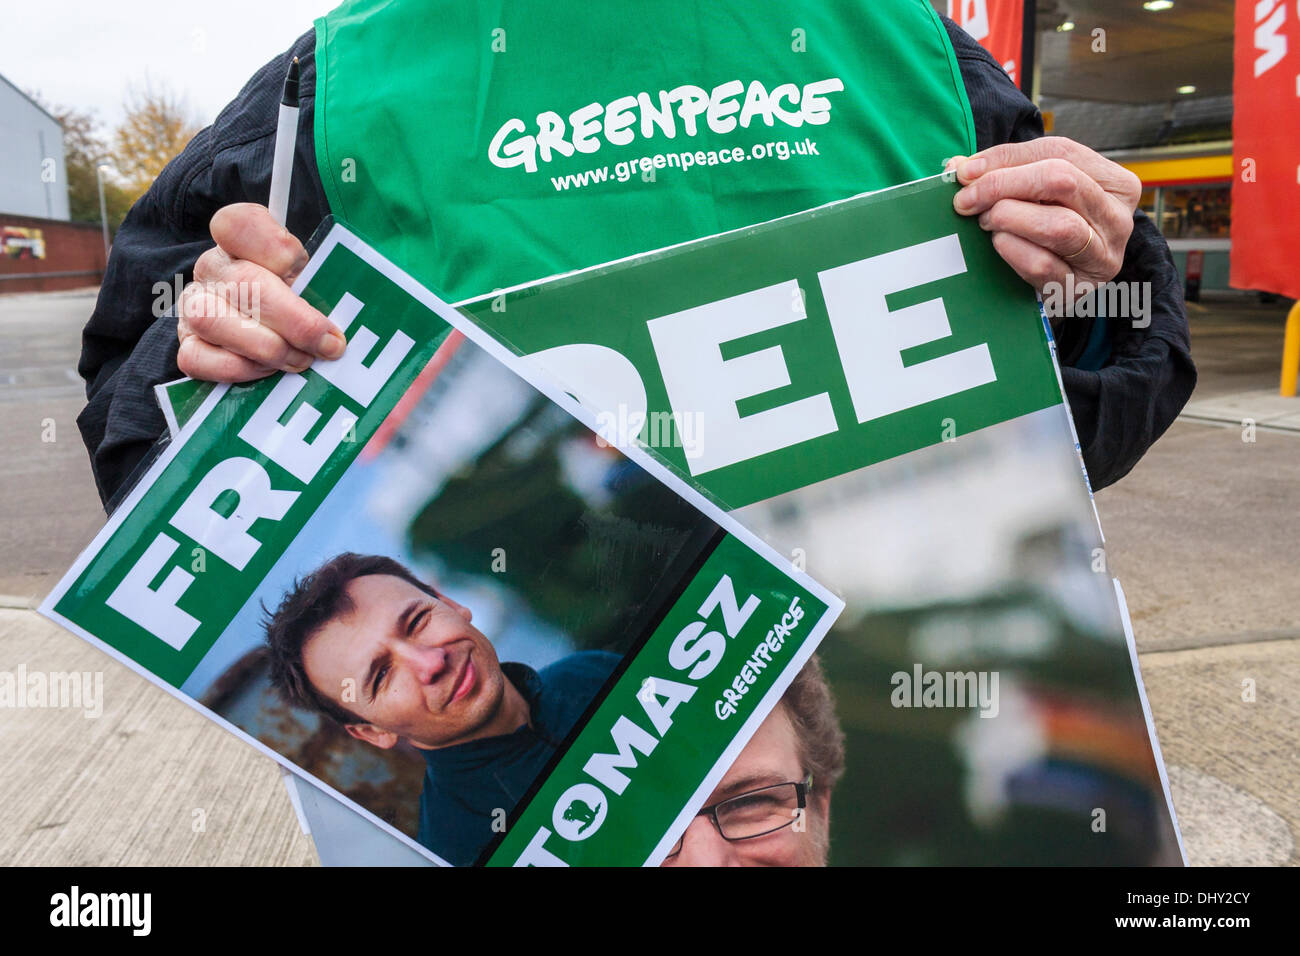 Greenpeace campaigners protesting outside a Shell filling station. Stock Photo